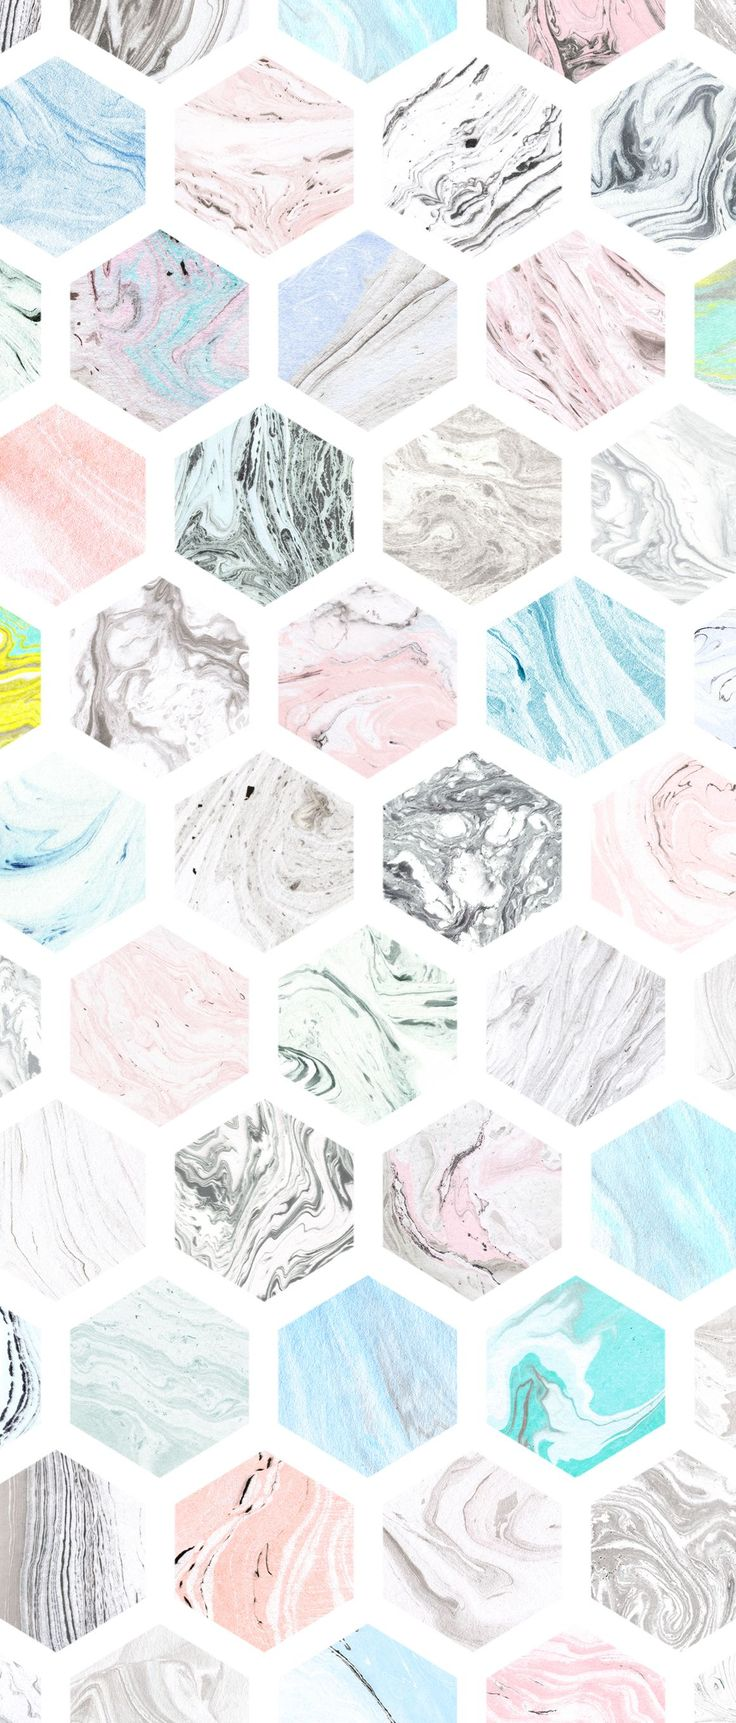 Marble Paper Textures by Pixelwise Co. on Creative Market